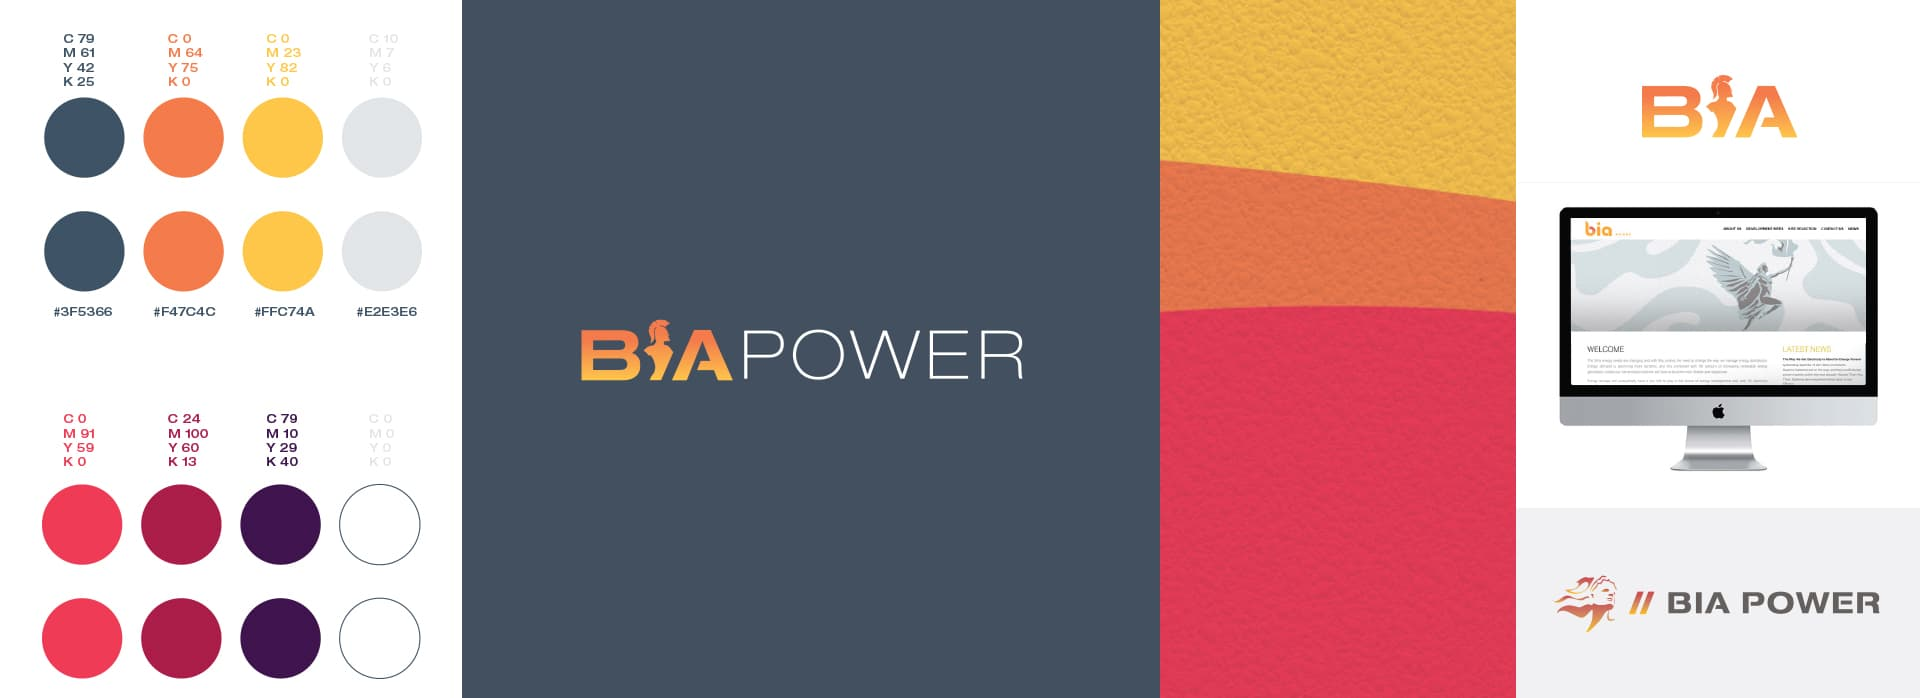 BiaPower colours and logo